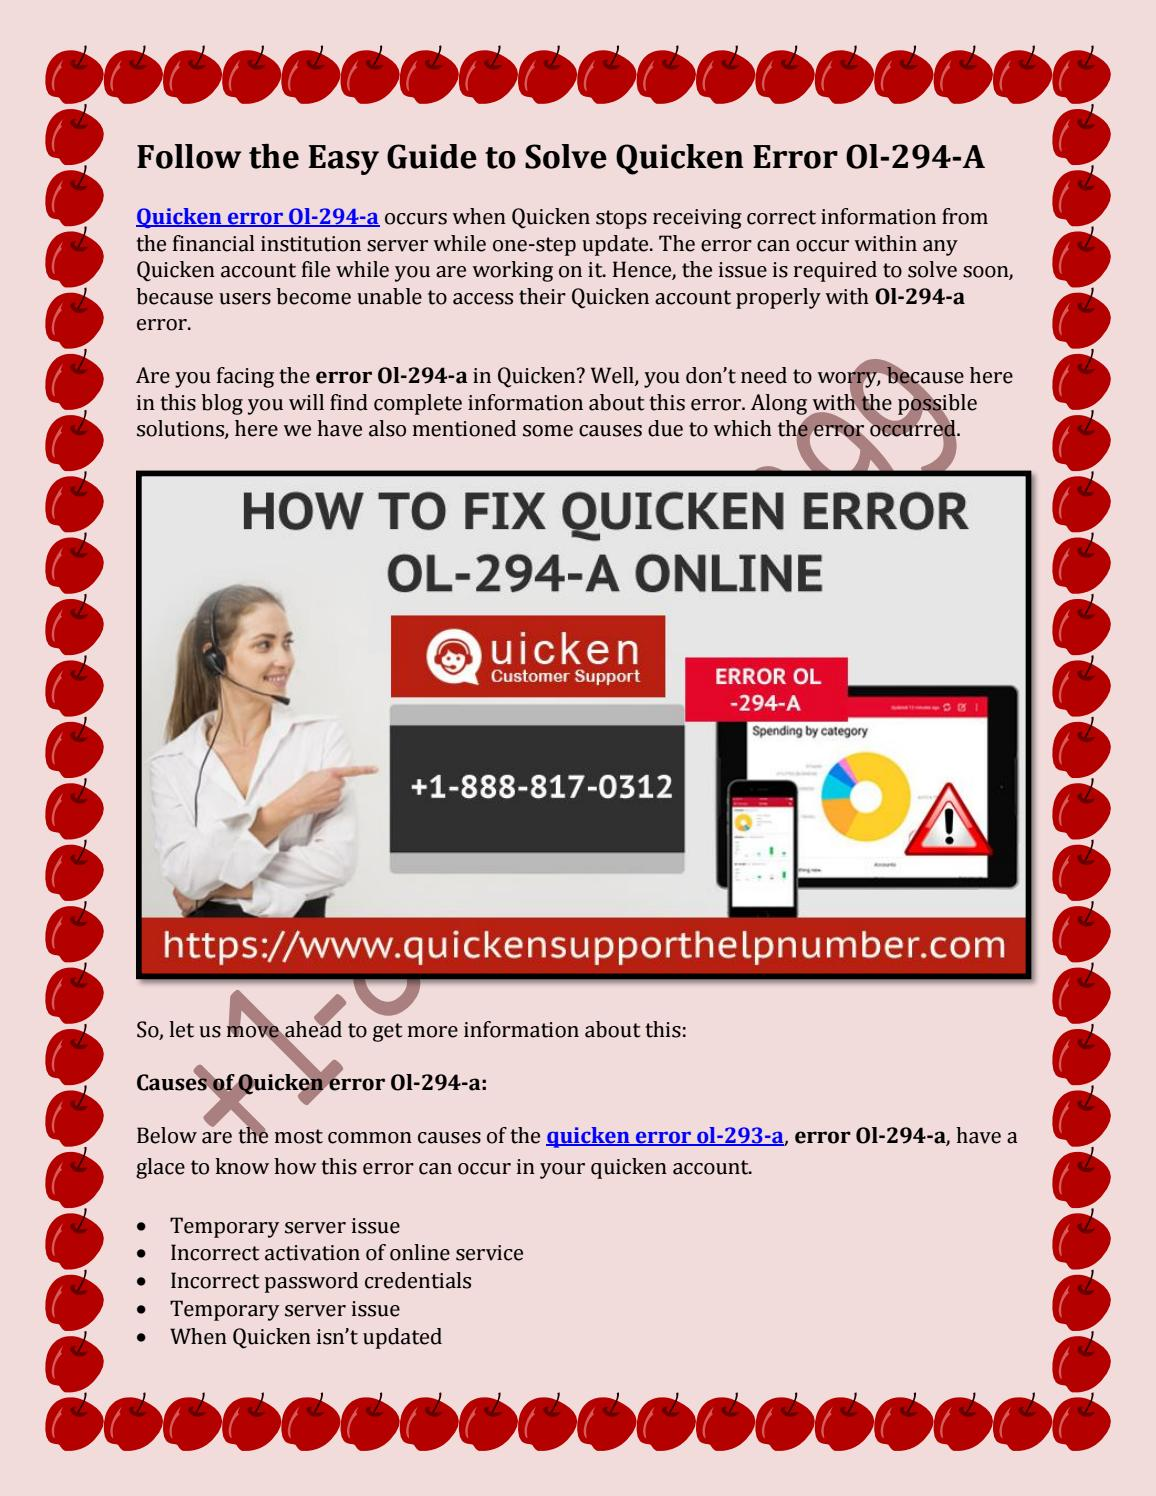 Follow the Easy Guide to Solve Quicken Error Ol-294-A by Norahbailey - issuu